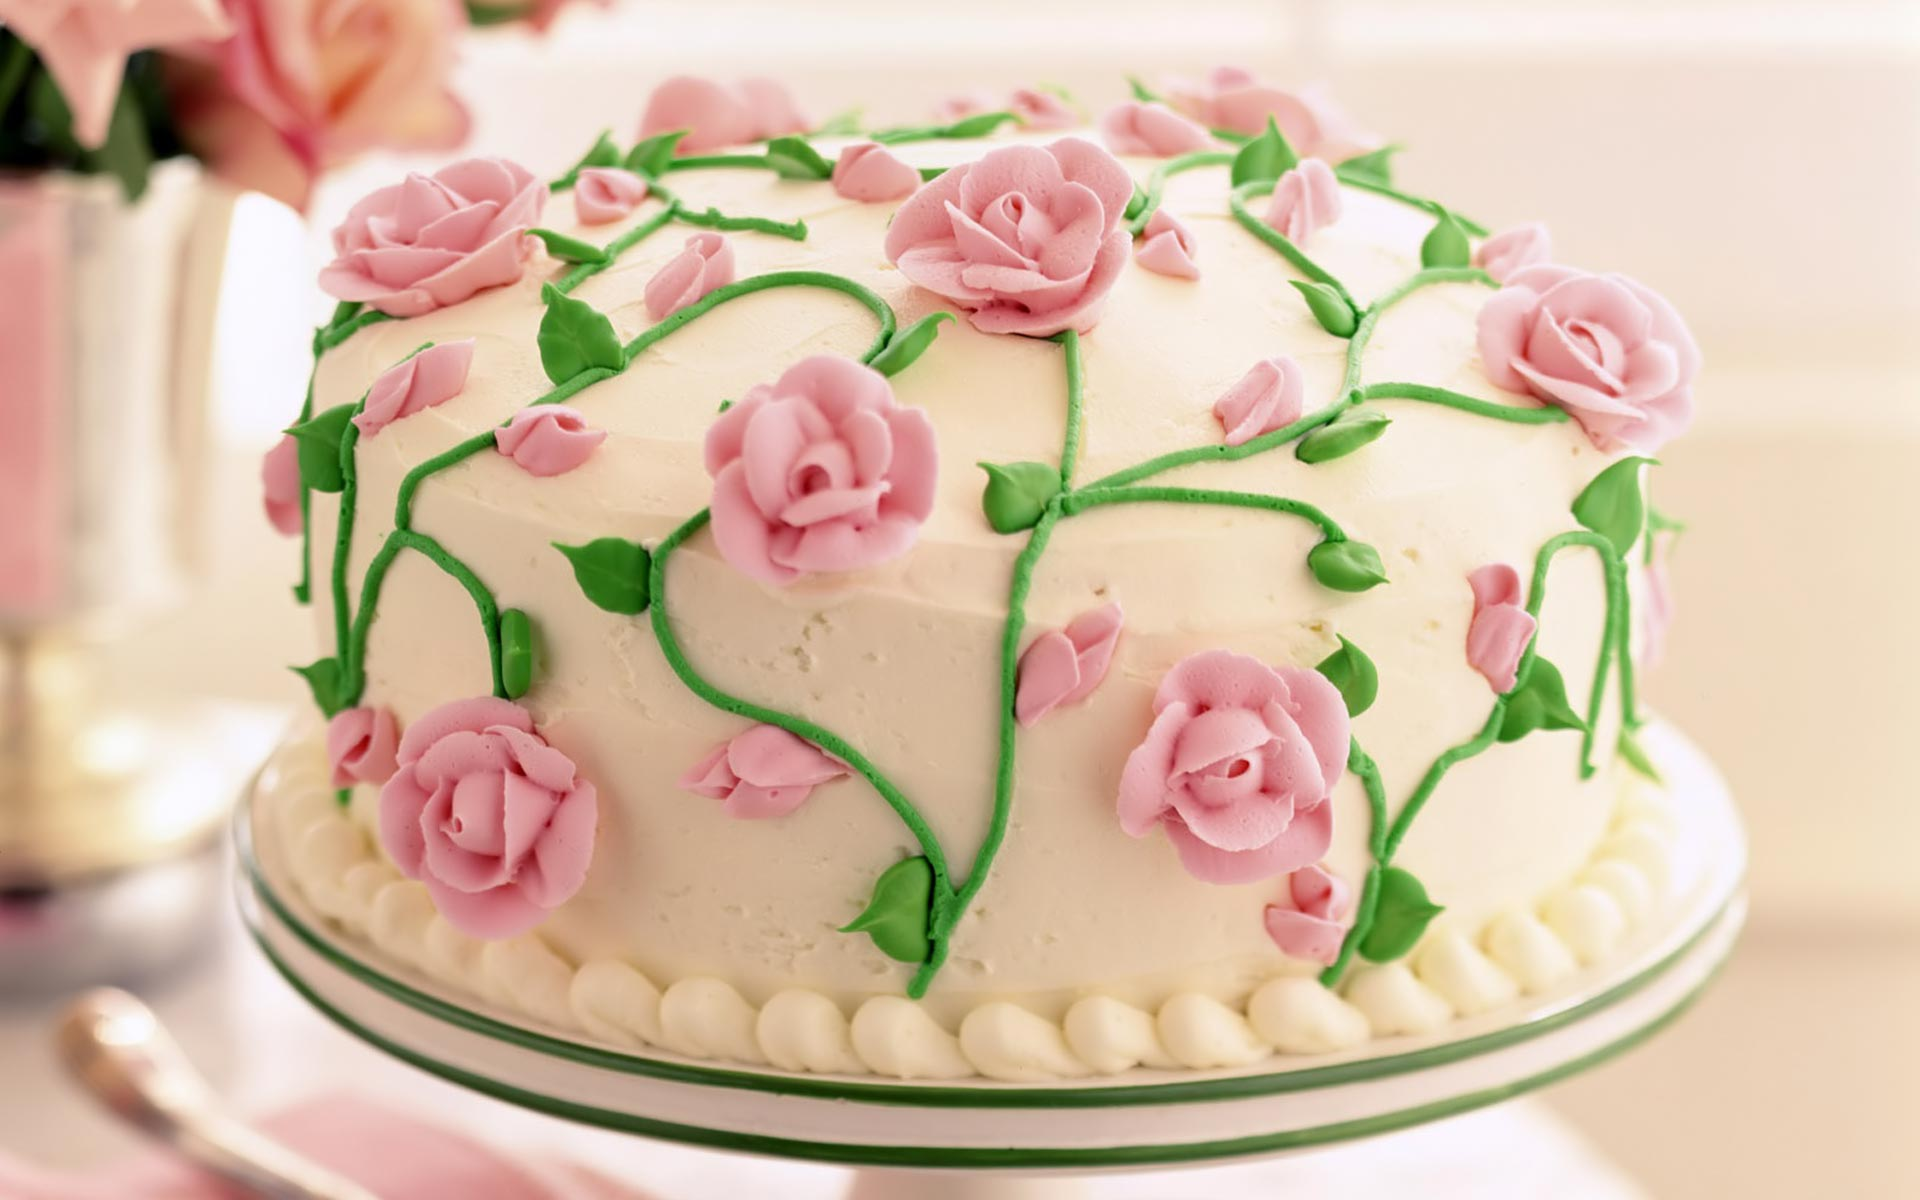 Cakes images wedding cake hd wallpaper and background photos - Wedding Cakes 7316